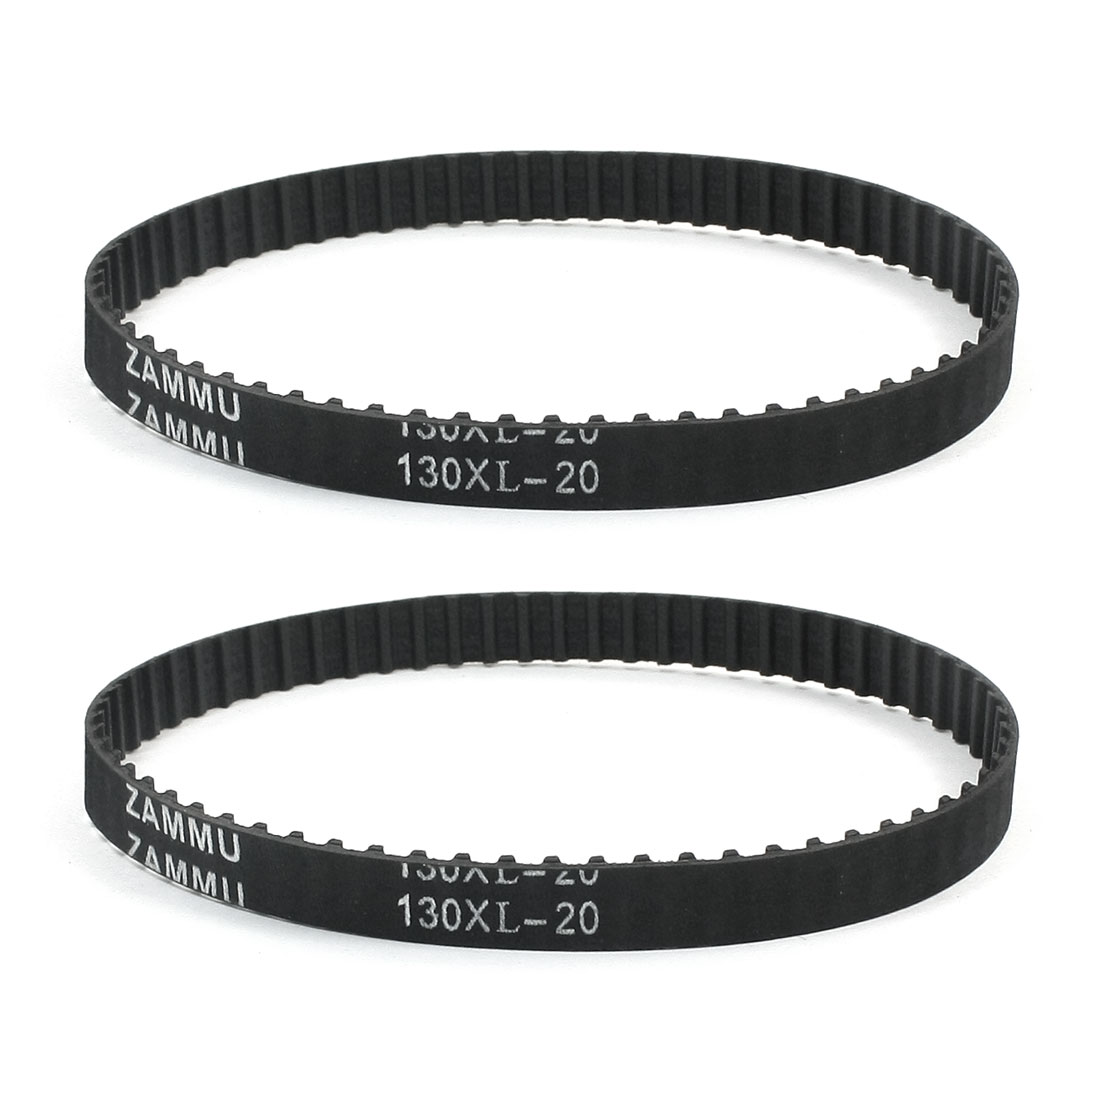 "130XL 13"" Girth 5.08mm Pitch 65-Teeth Black Rubber Industrial Synchro Machine Synchronous Timing Belt 2Pcs"